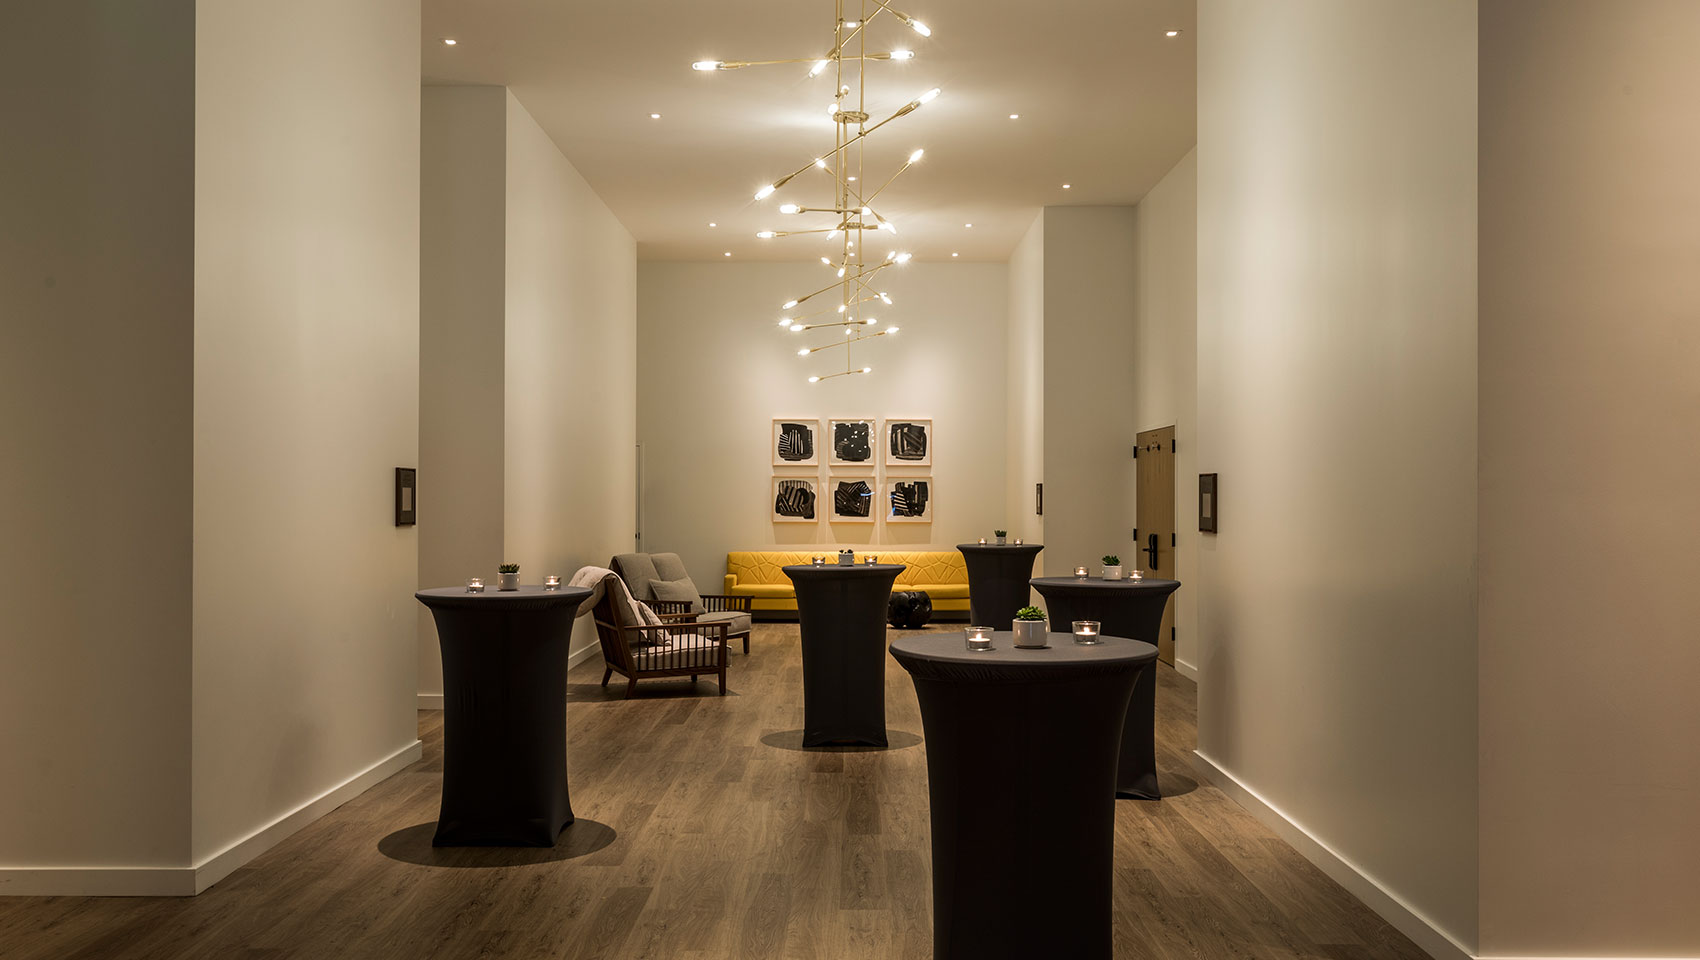 Pre-function event space at Kimpton Everly